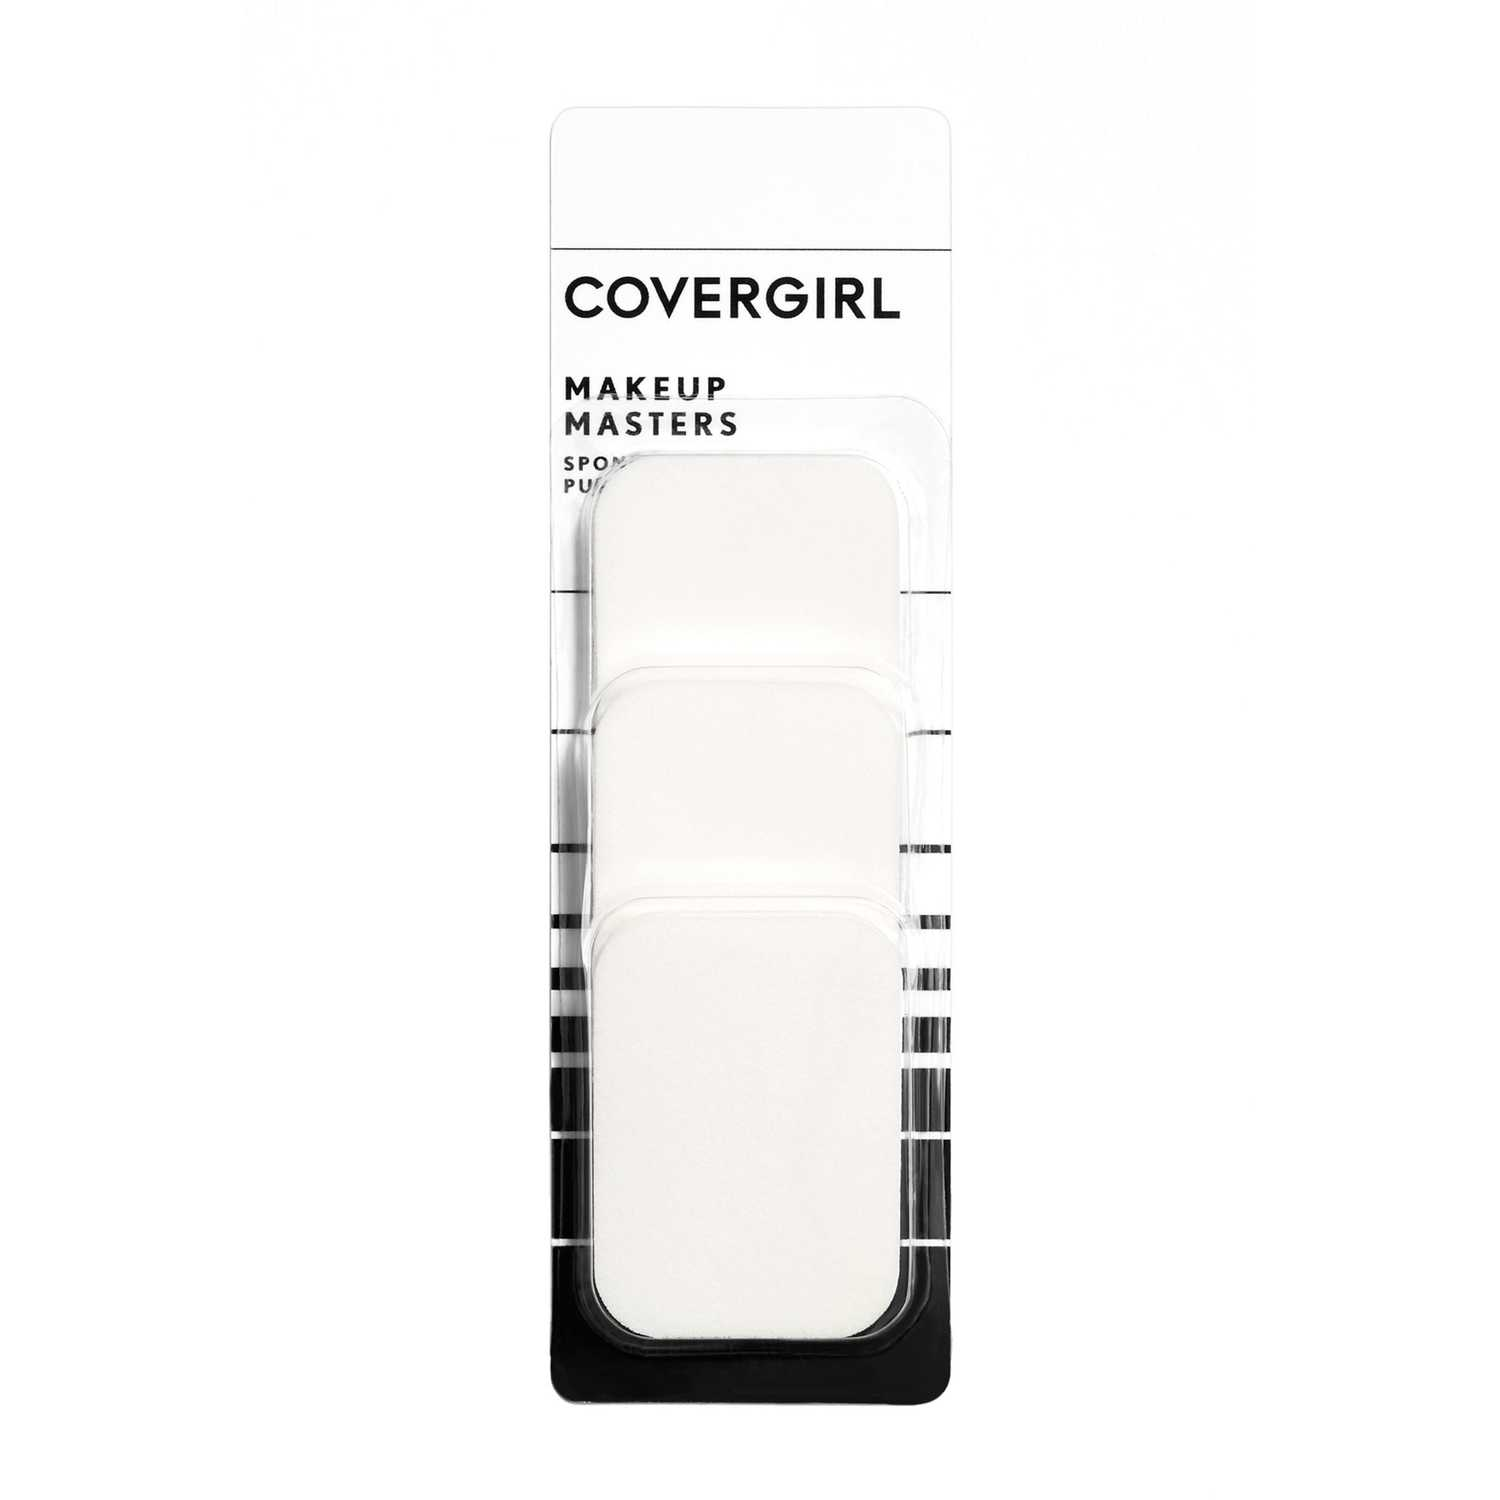 Covergirl Esponjas Base Make Up Masters Blanco Blenders y esponjas